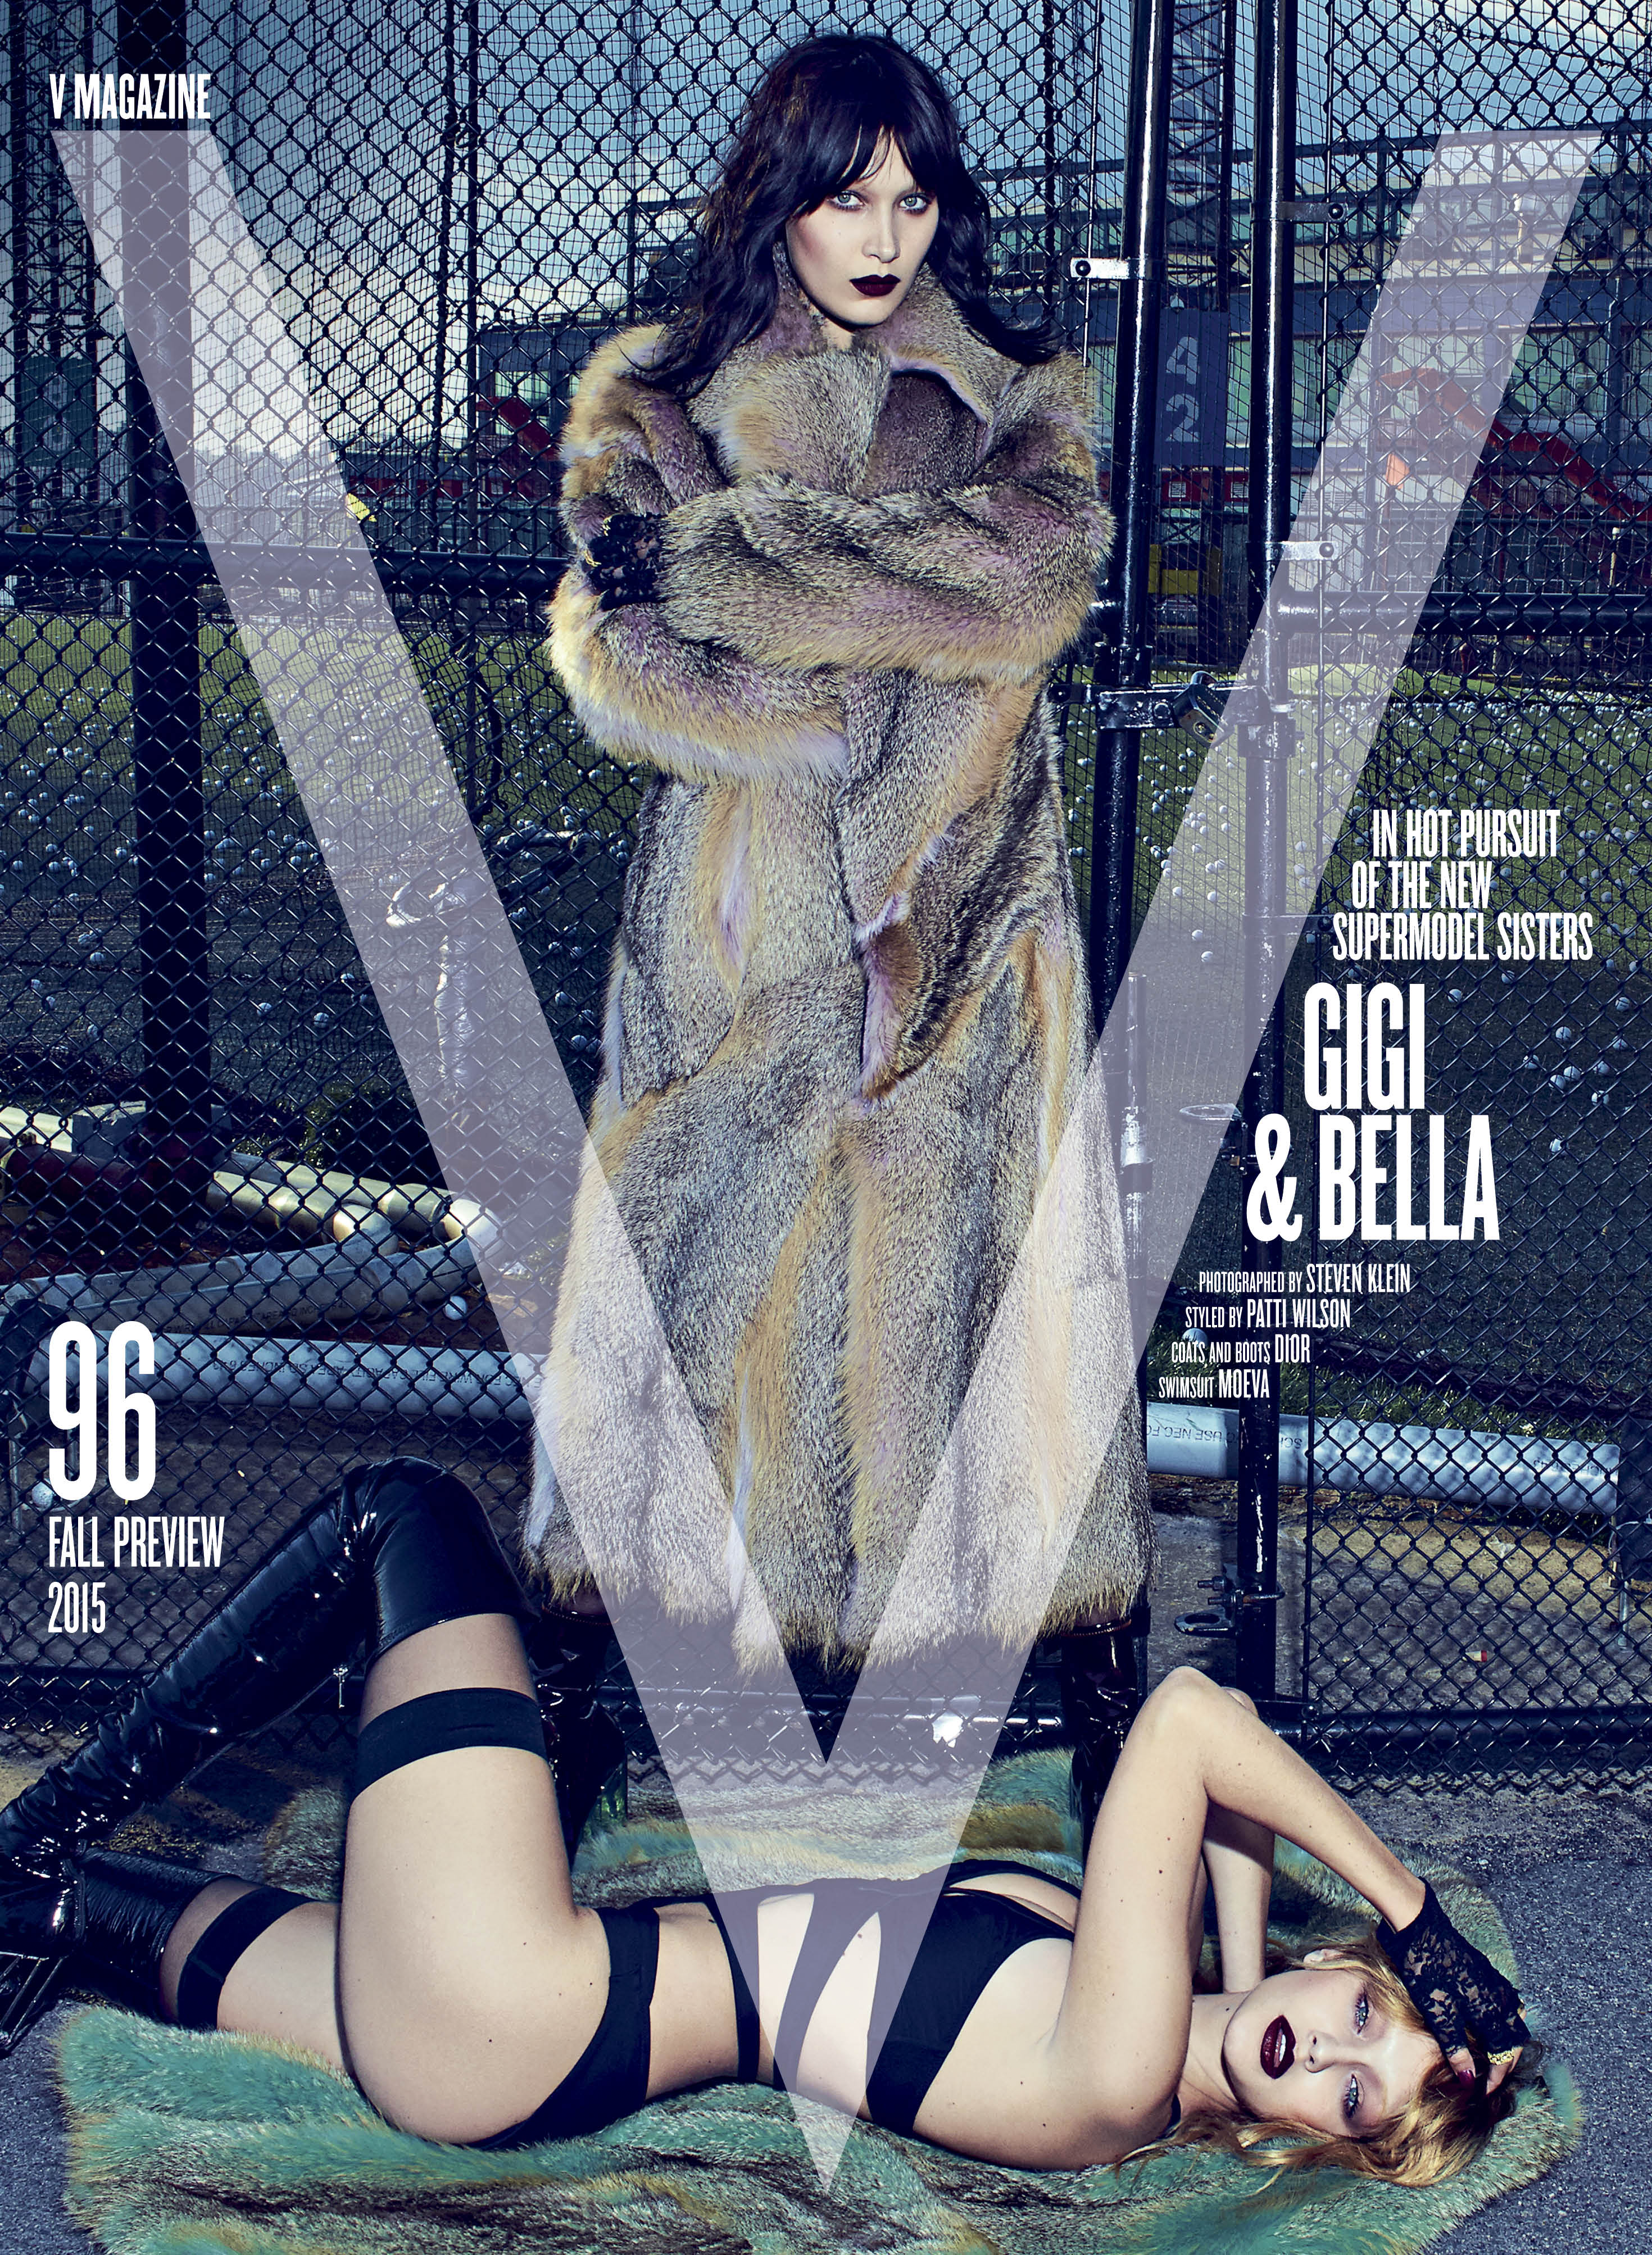 Gigi and Bella Hadid on the cover of V Magaine